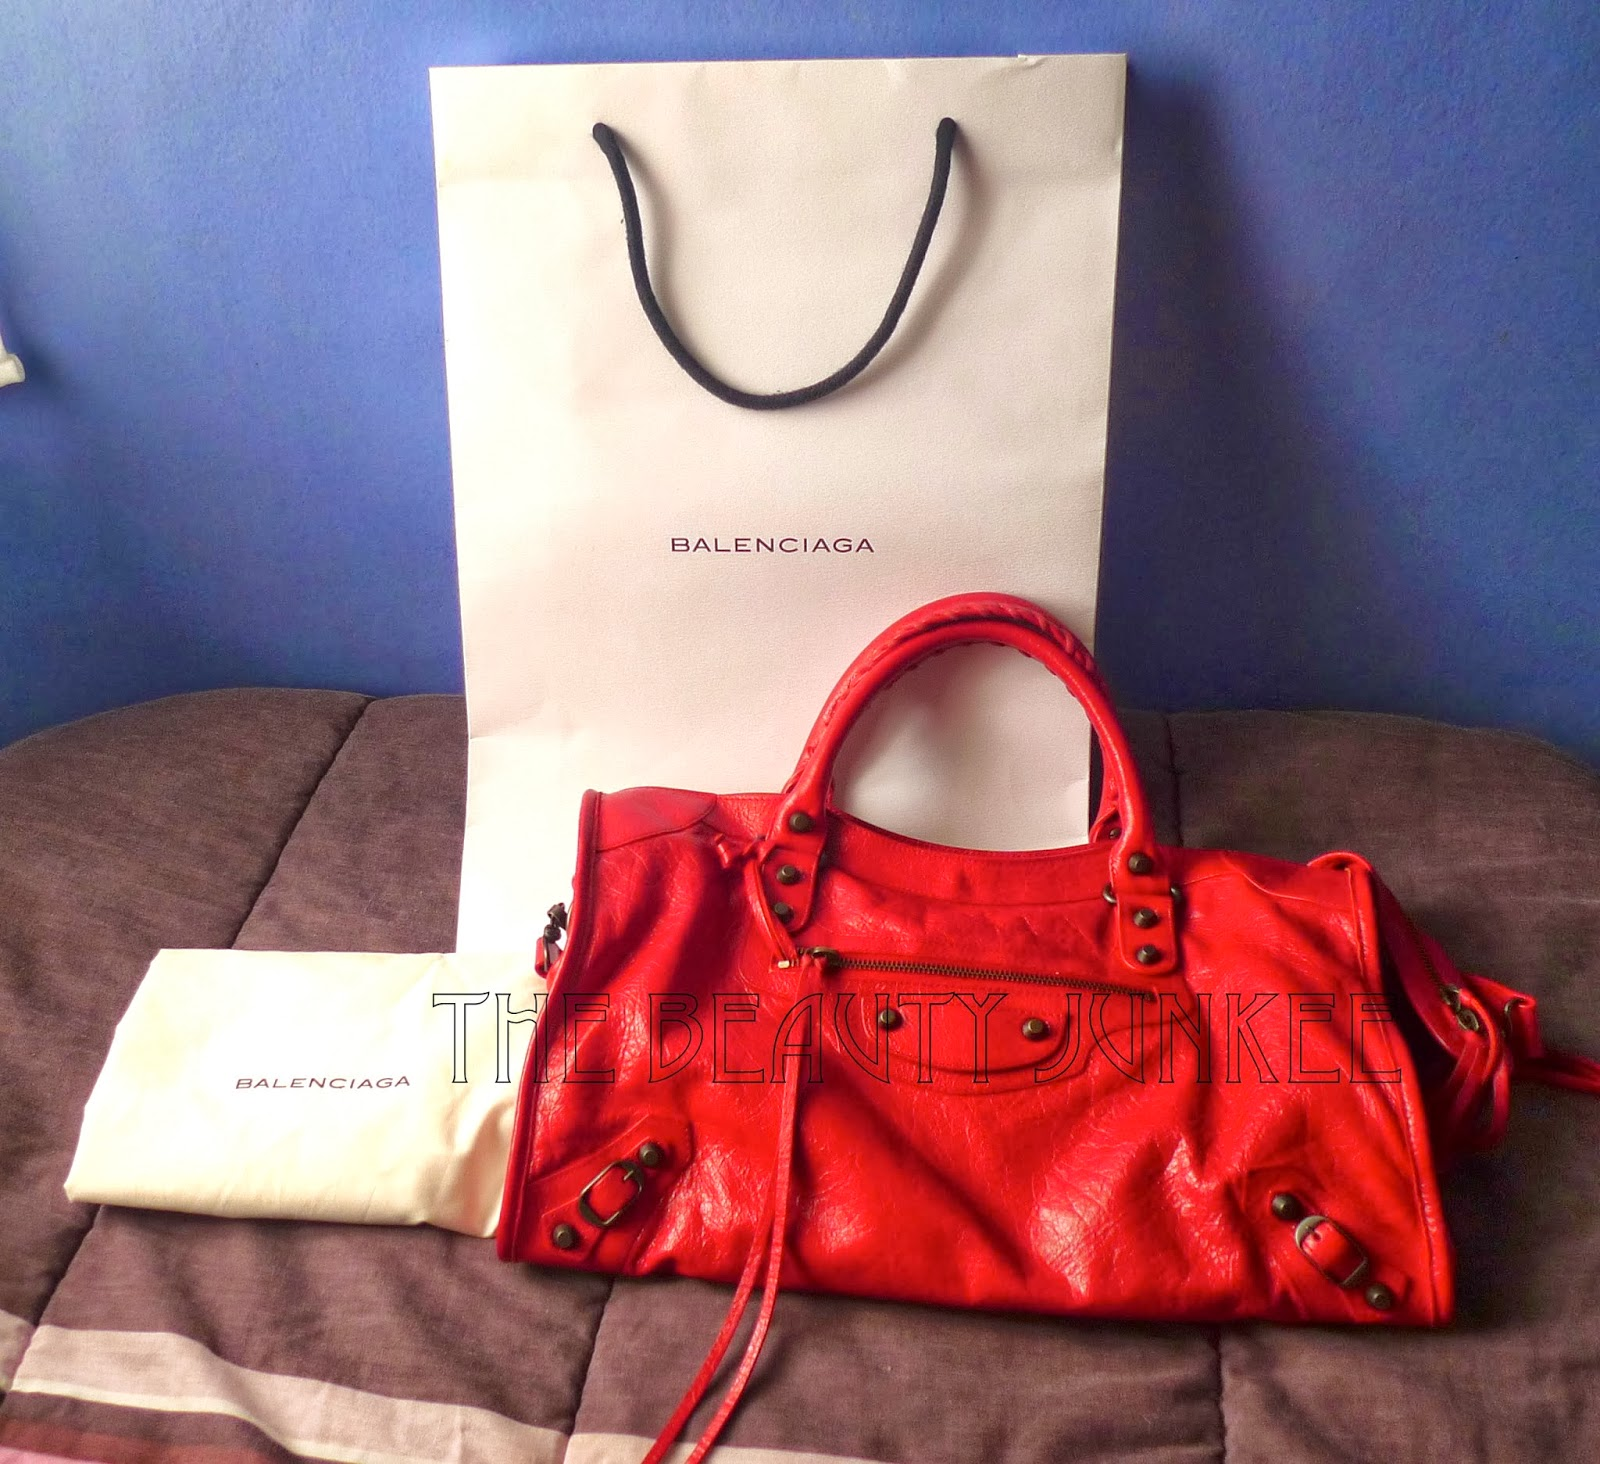 Balenciaga Suede Bag Review